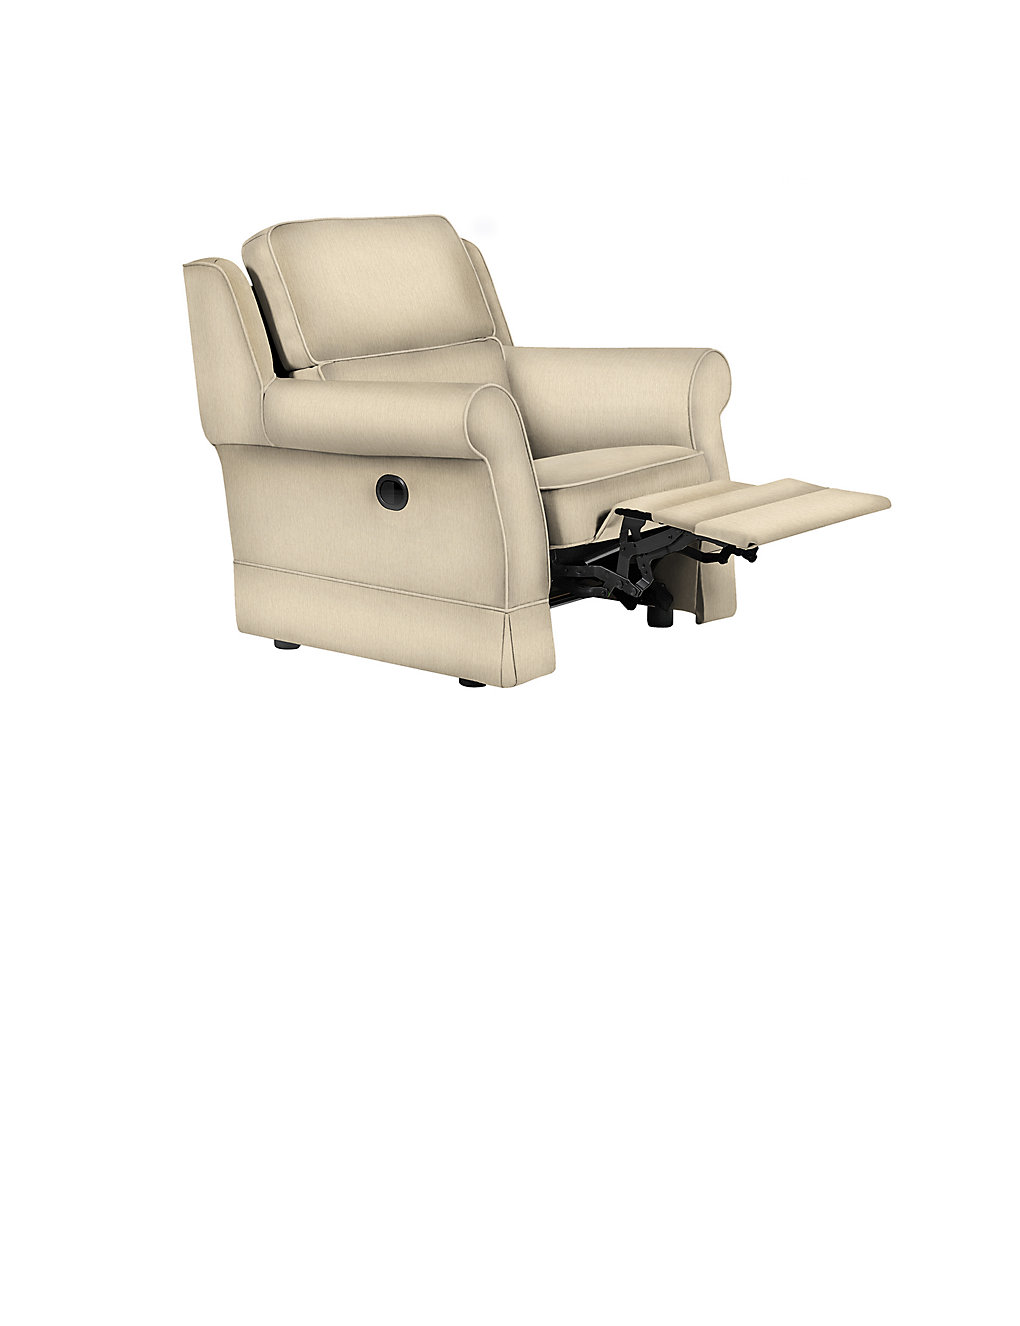 Colour by numbers richmond - The Richmond High Back Recliner